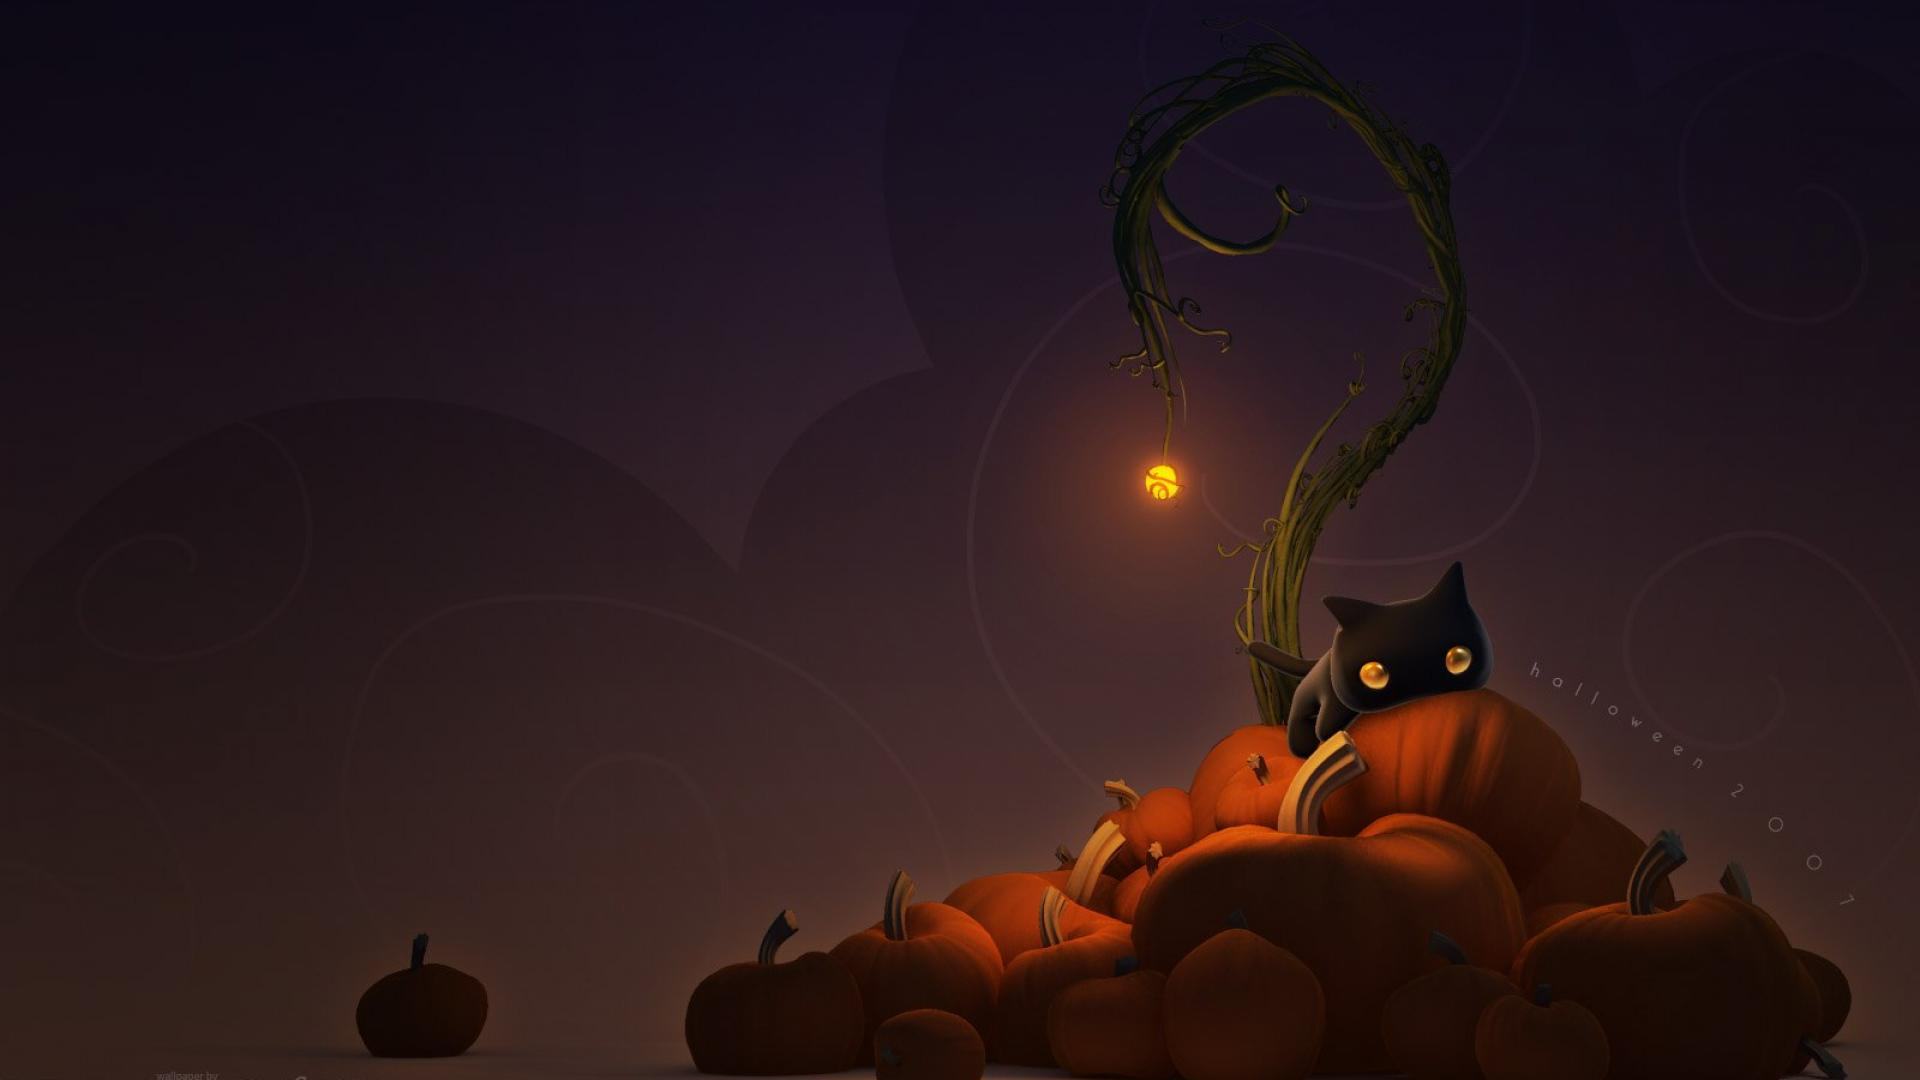 cute halloween wallpaper - photo #14